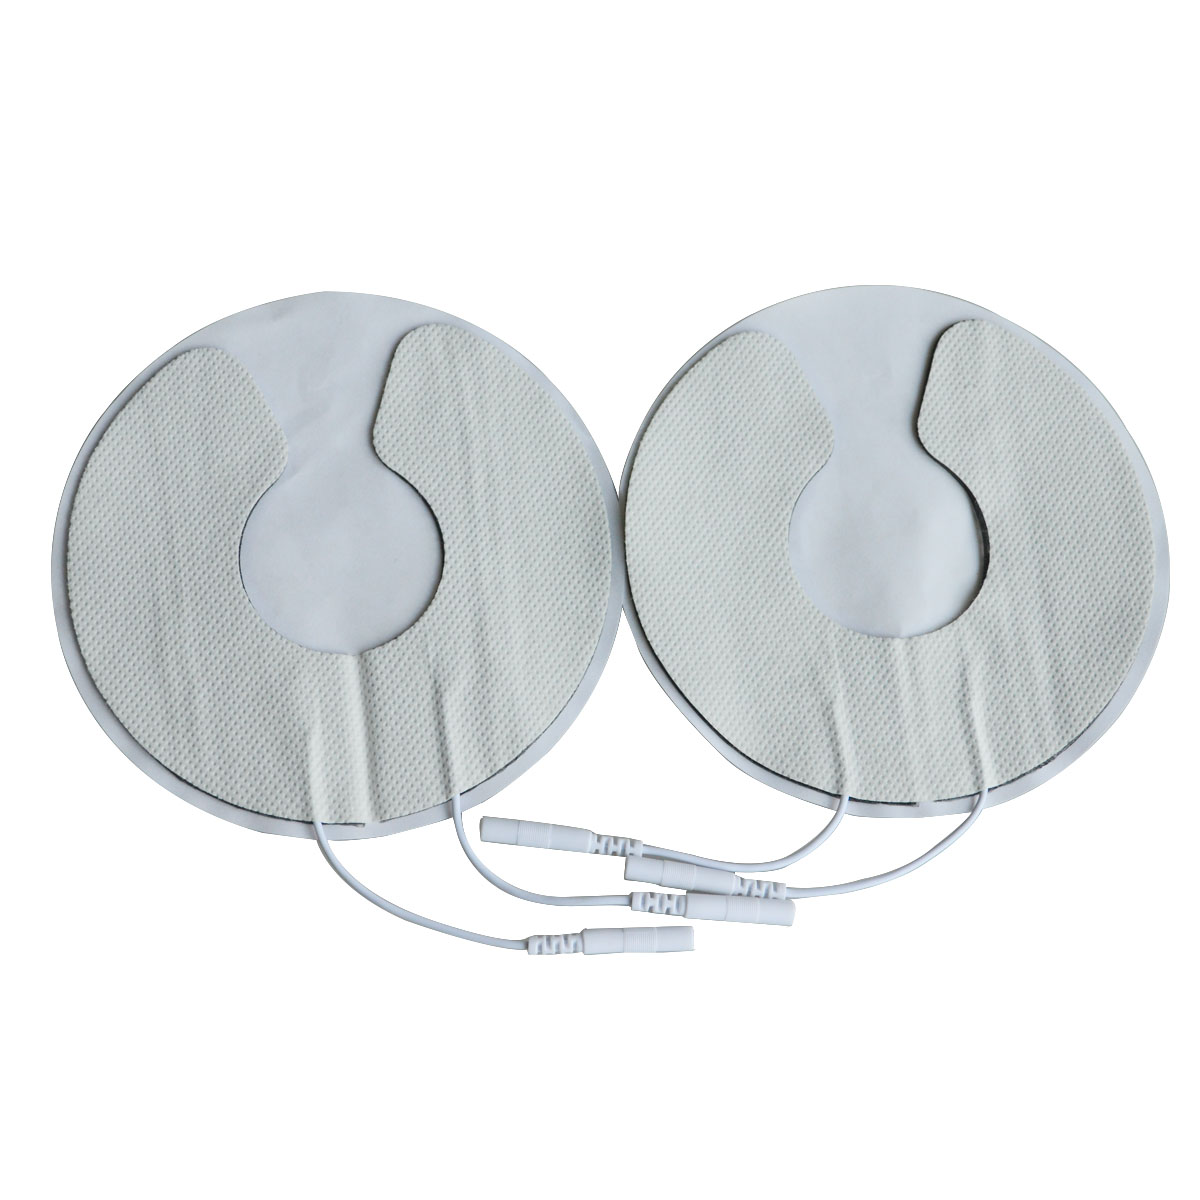 1Pair New Breast Electrode Pads Chest Adhesive Patches Breast Physiotherapy Jack 2.0mm For Breast Massage Relieving Pain